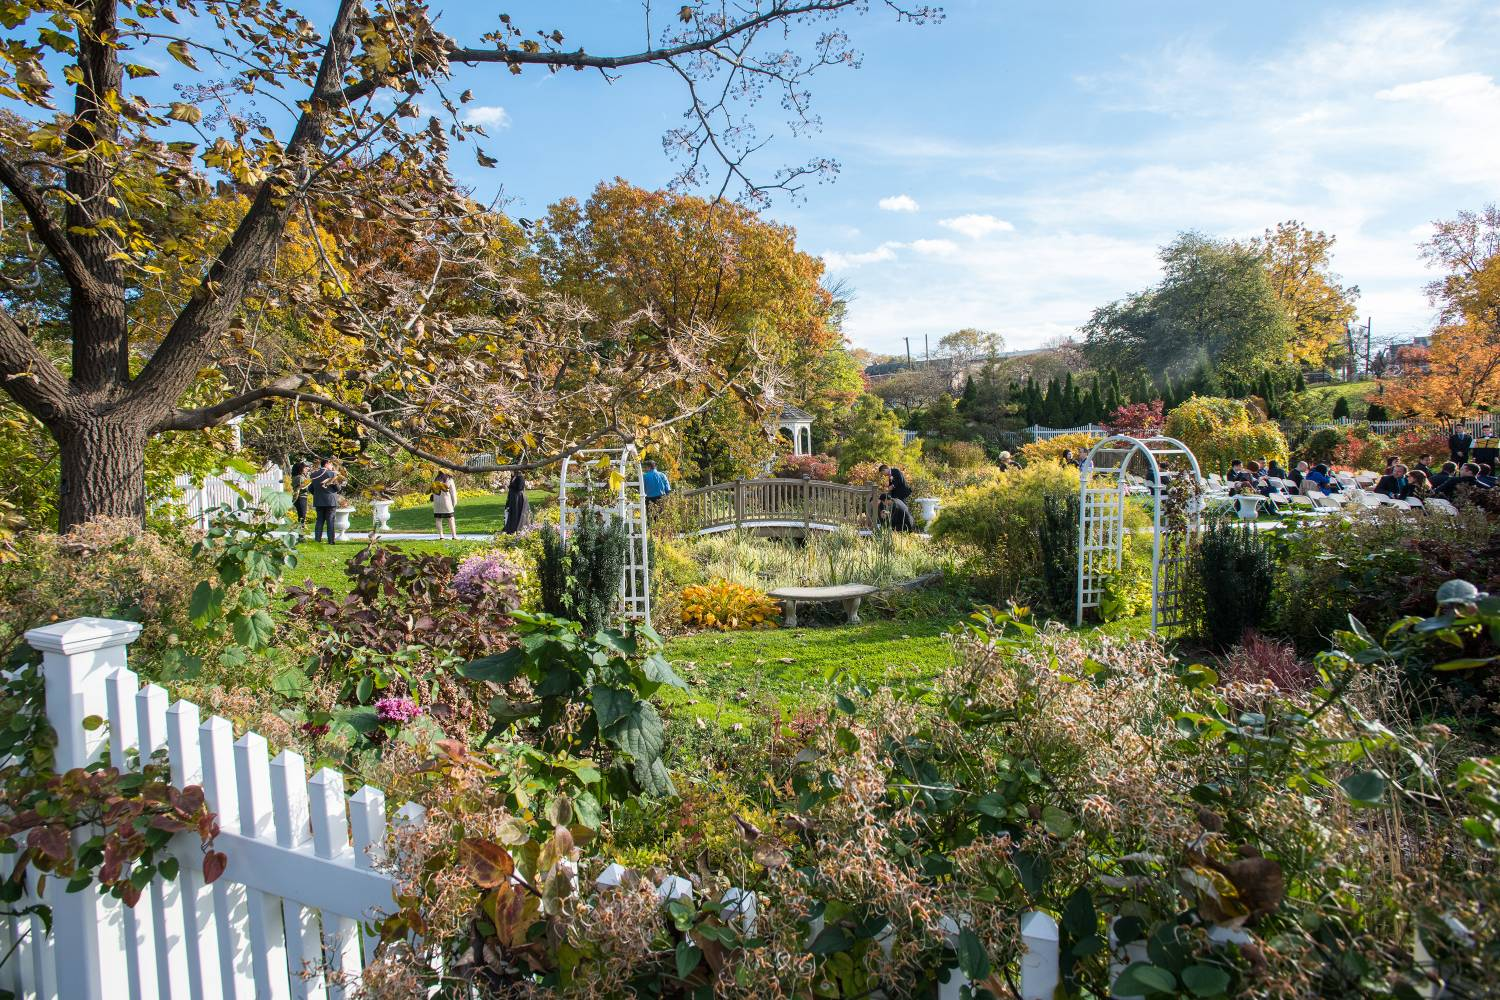 Ravenite Social Club New York City, Queens Botanical Garden: Your Always- Up-to-Date Guide